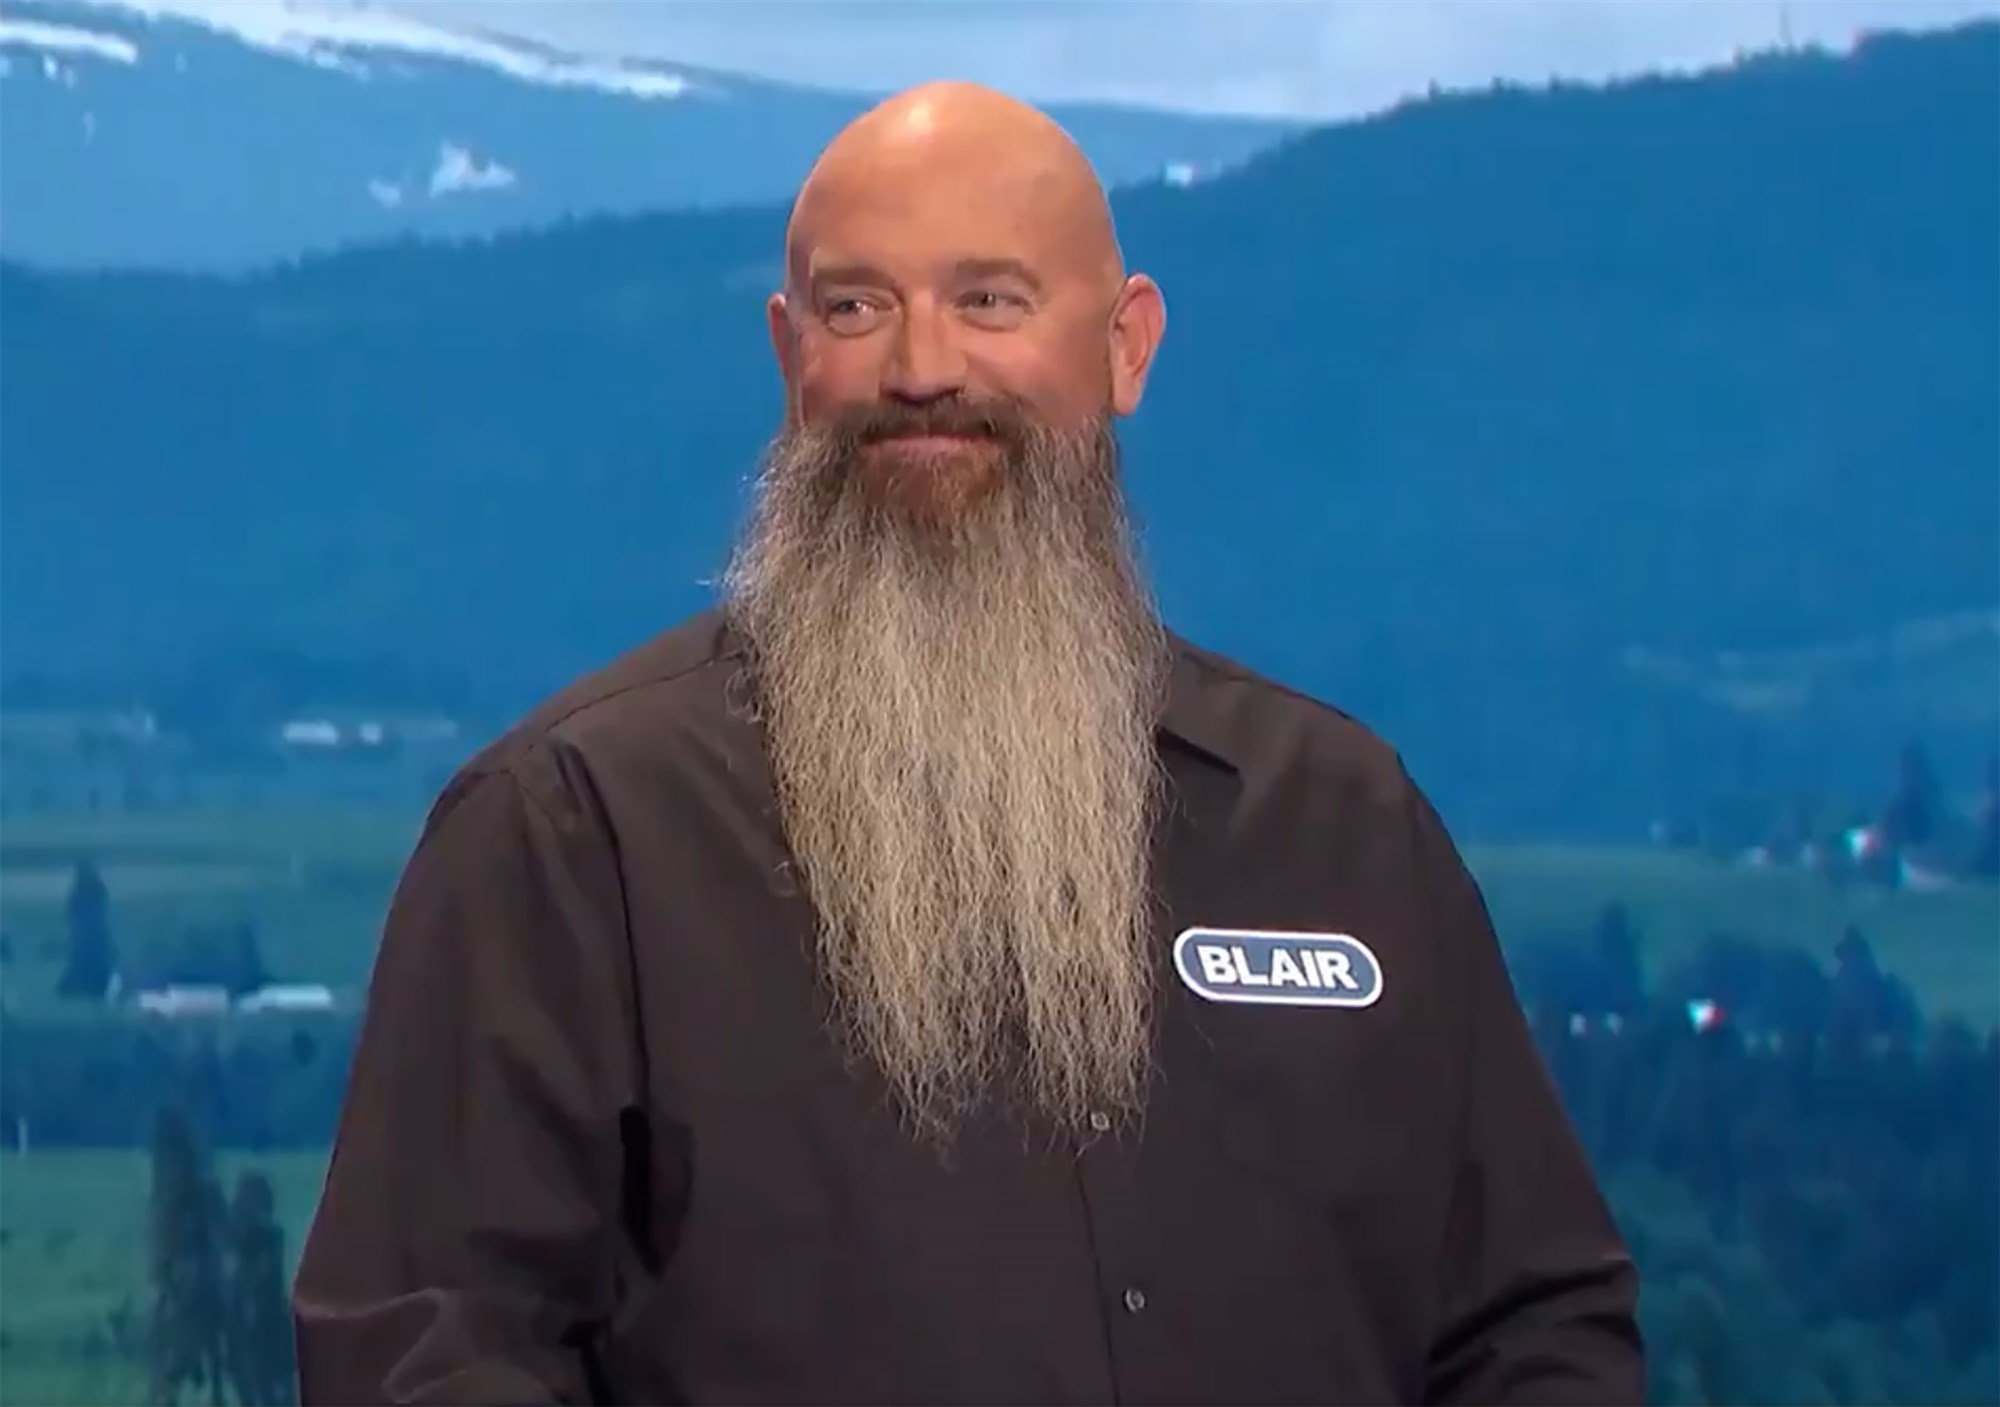 San Diego man delivers hilarious introduction on Wheel Of Fortune -